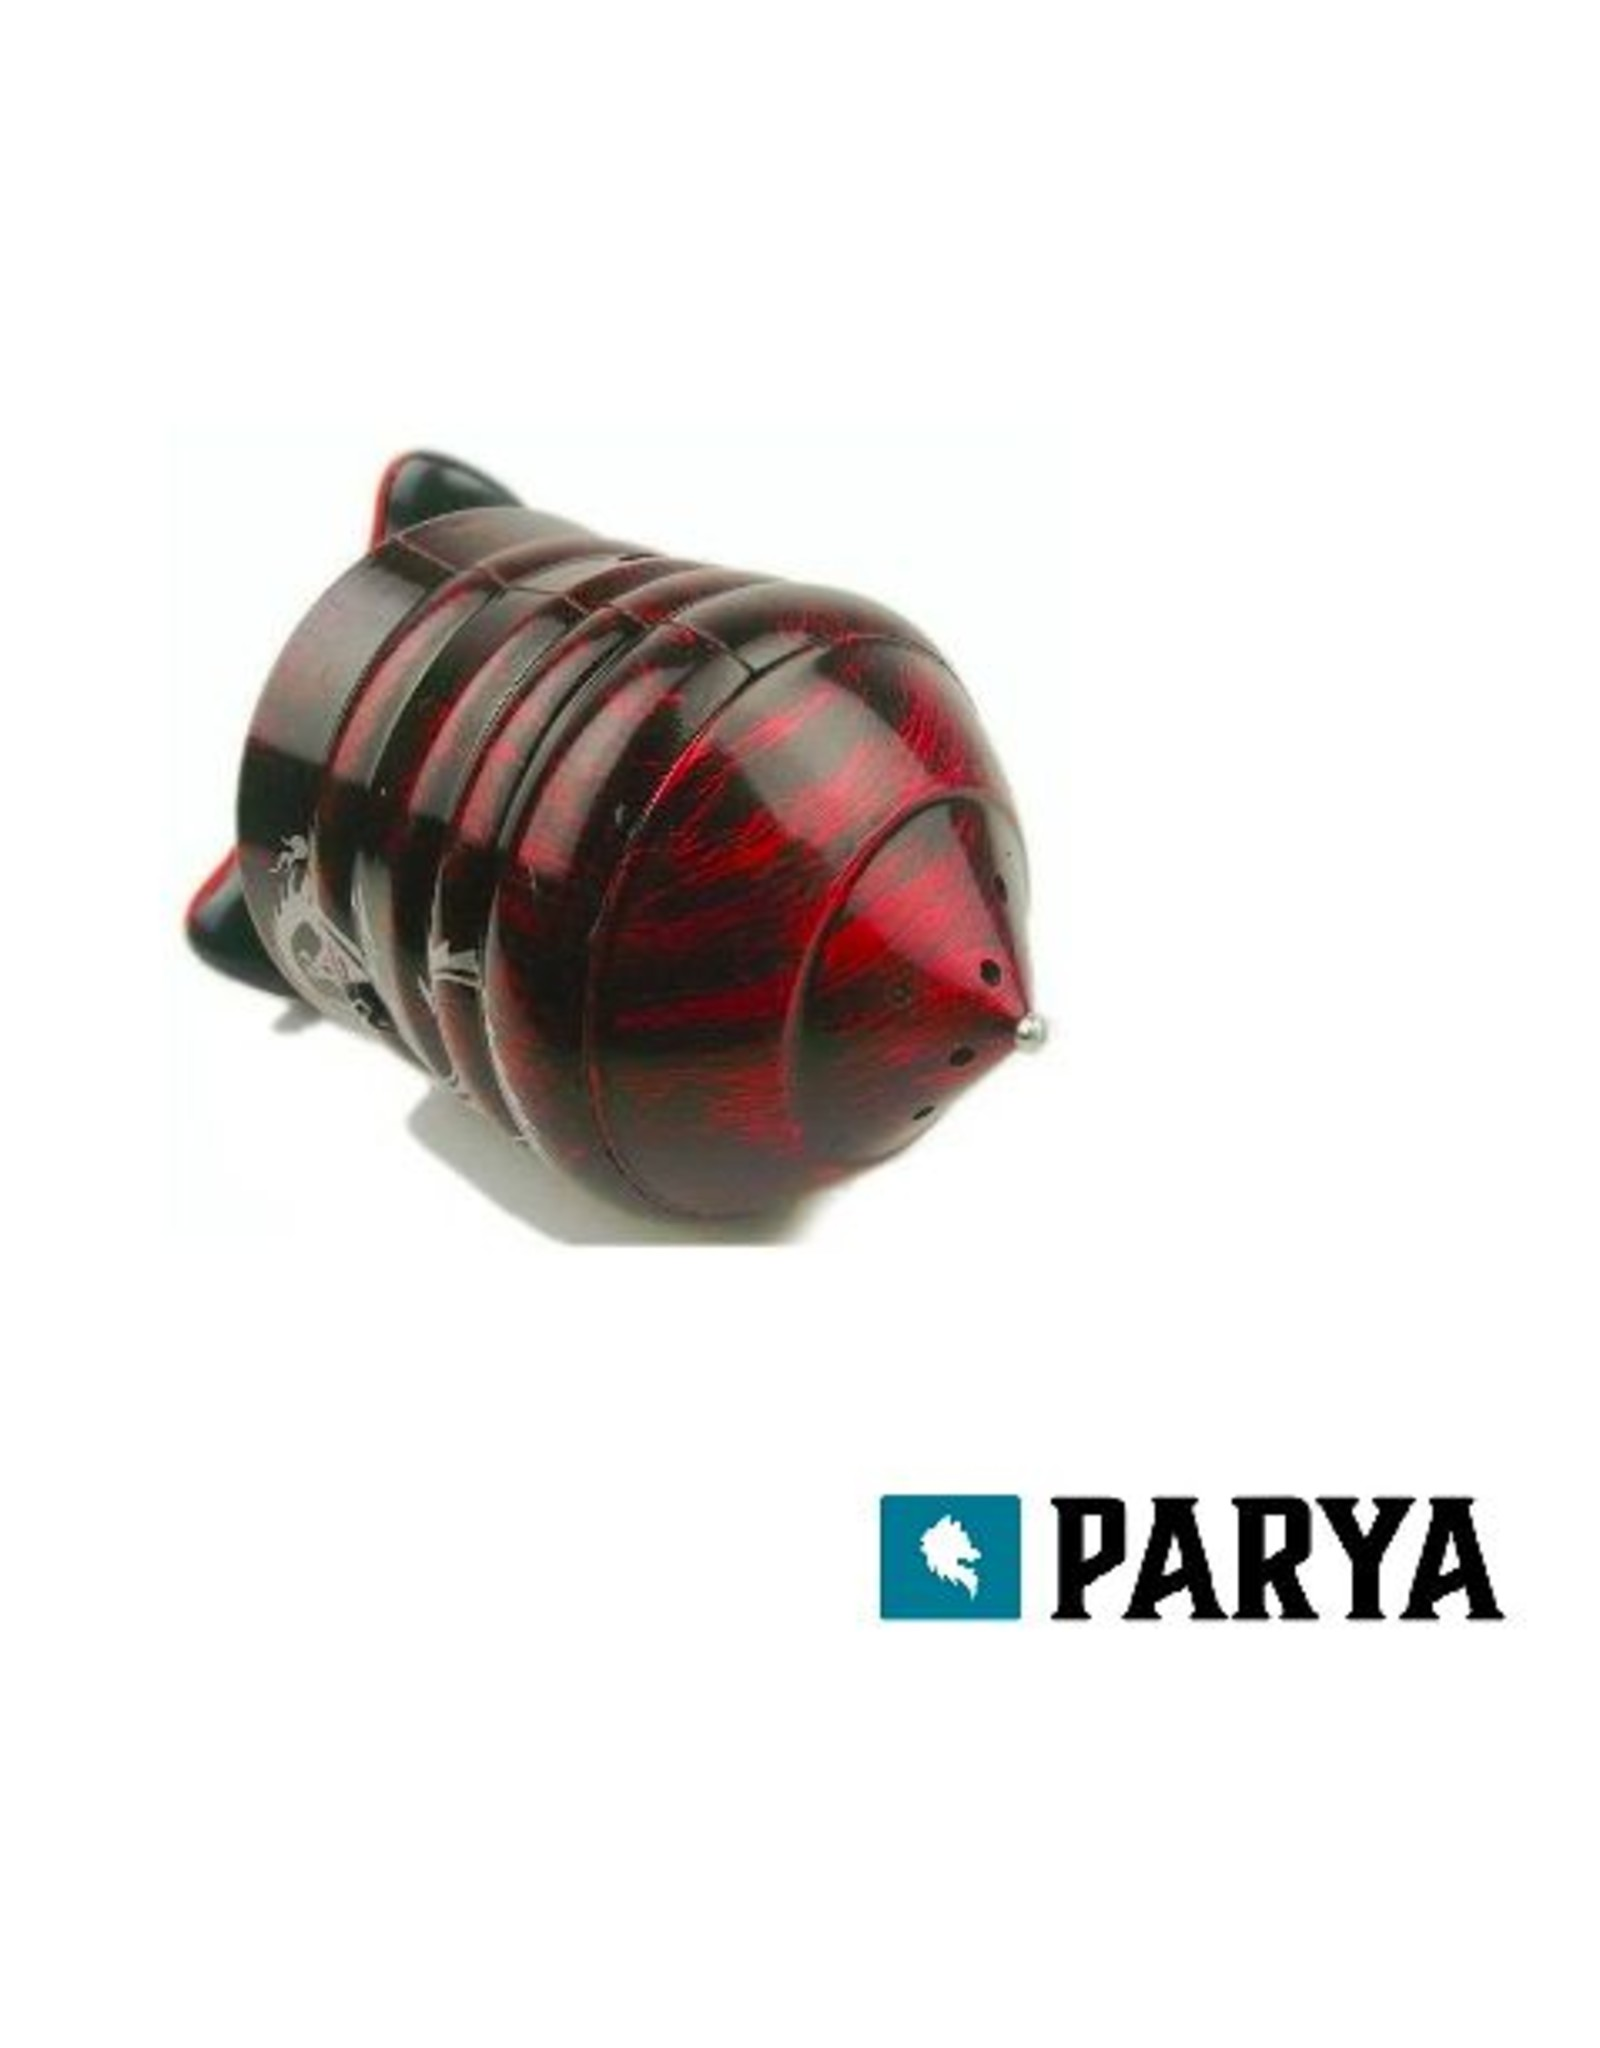 Parya Official Parya red dragon tol - ev